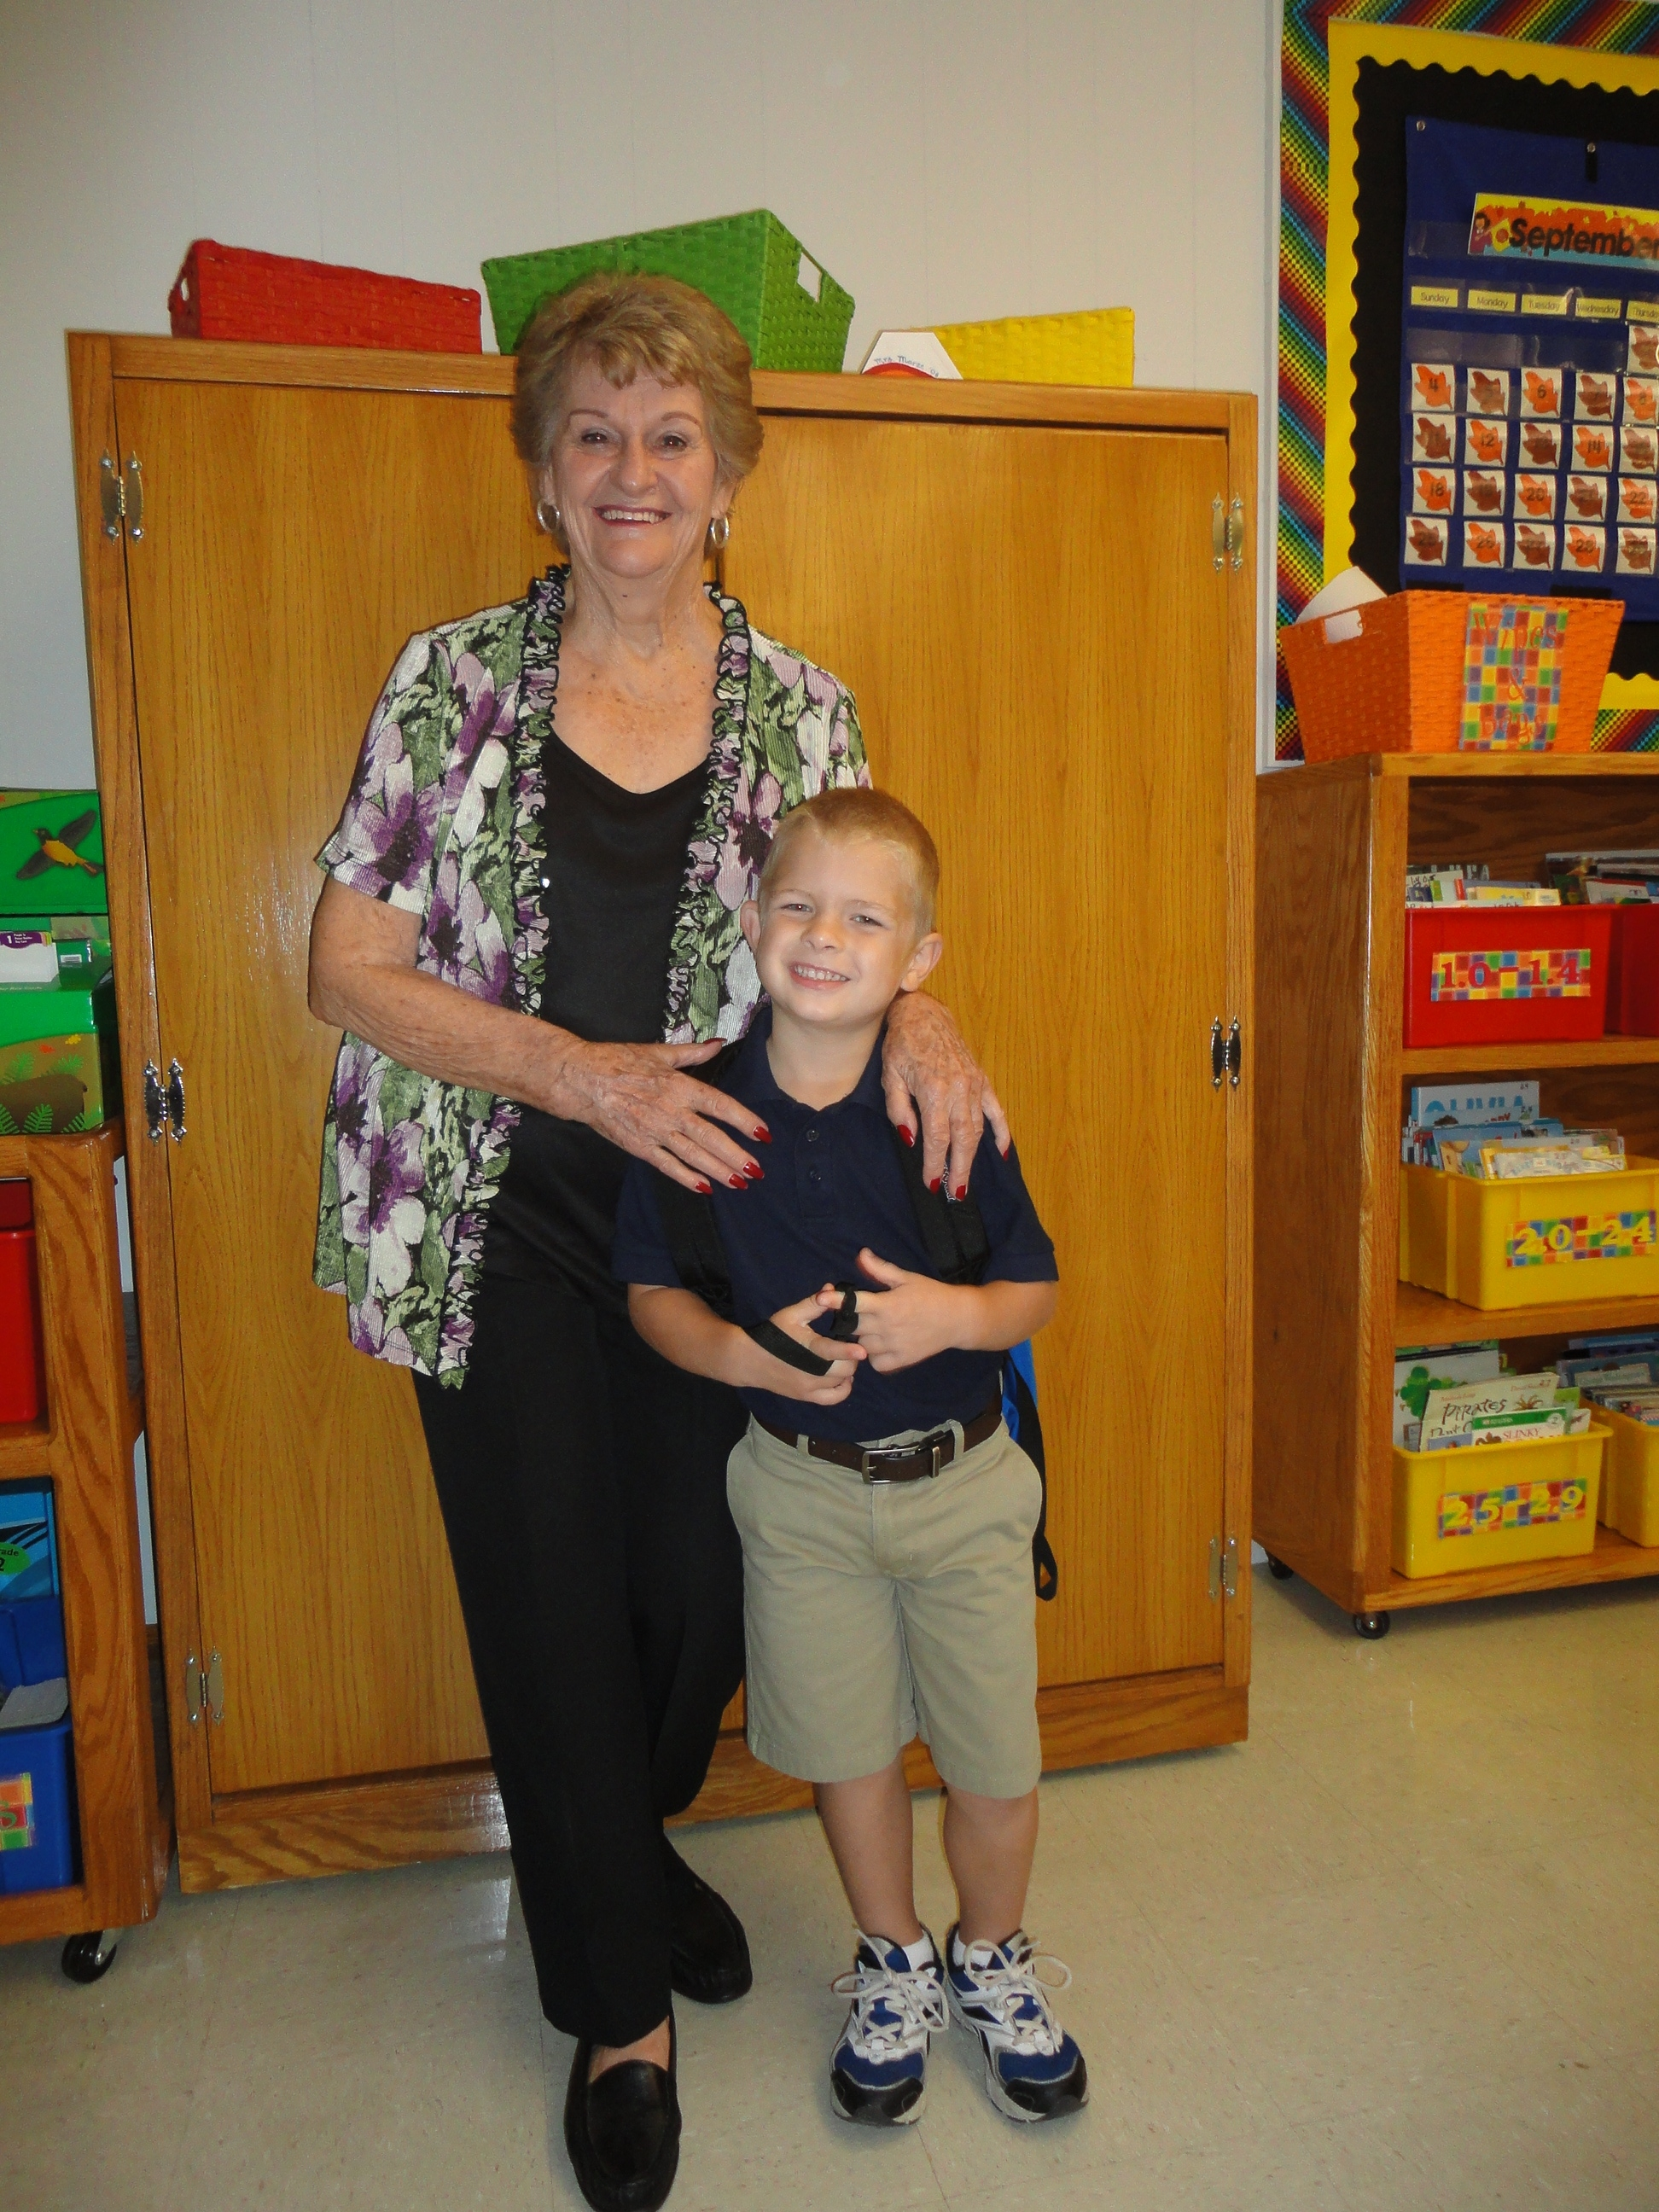 hagen & granny at grandparents day